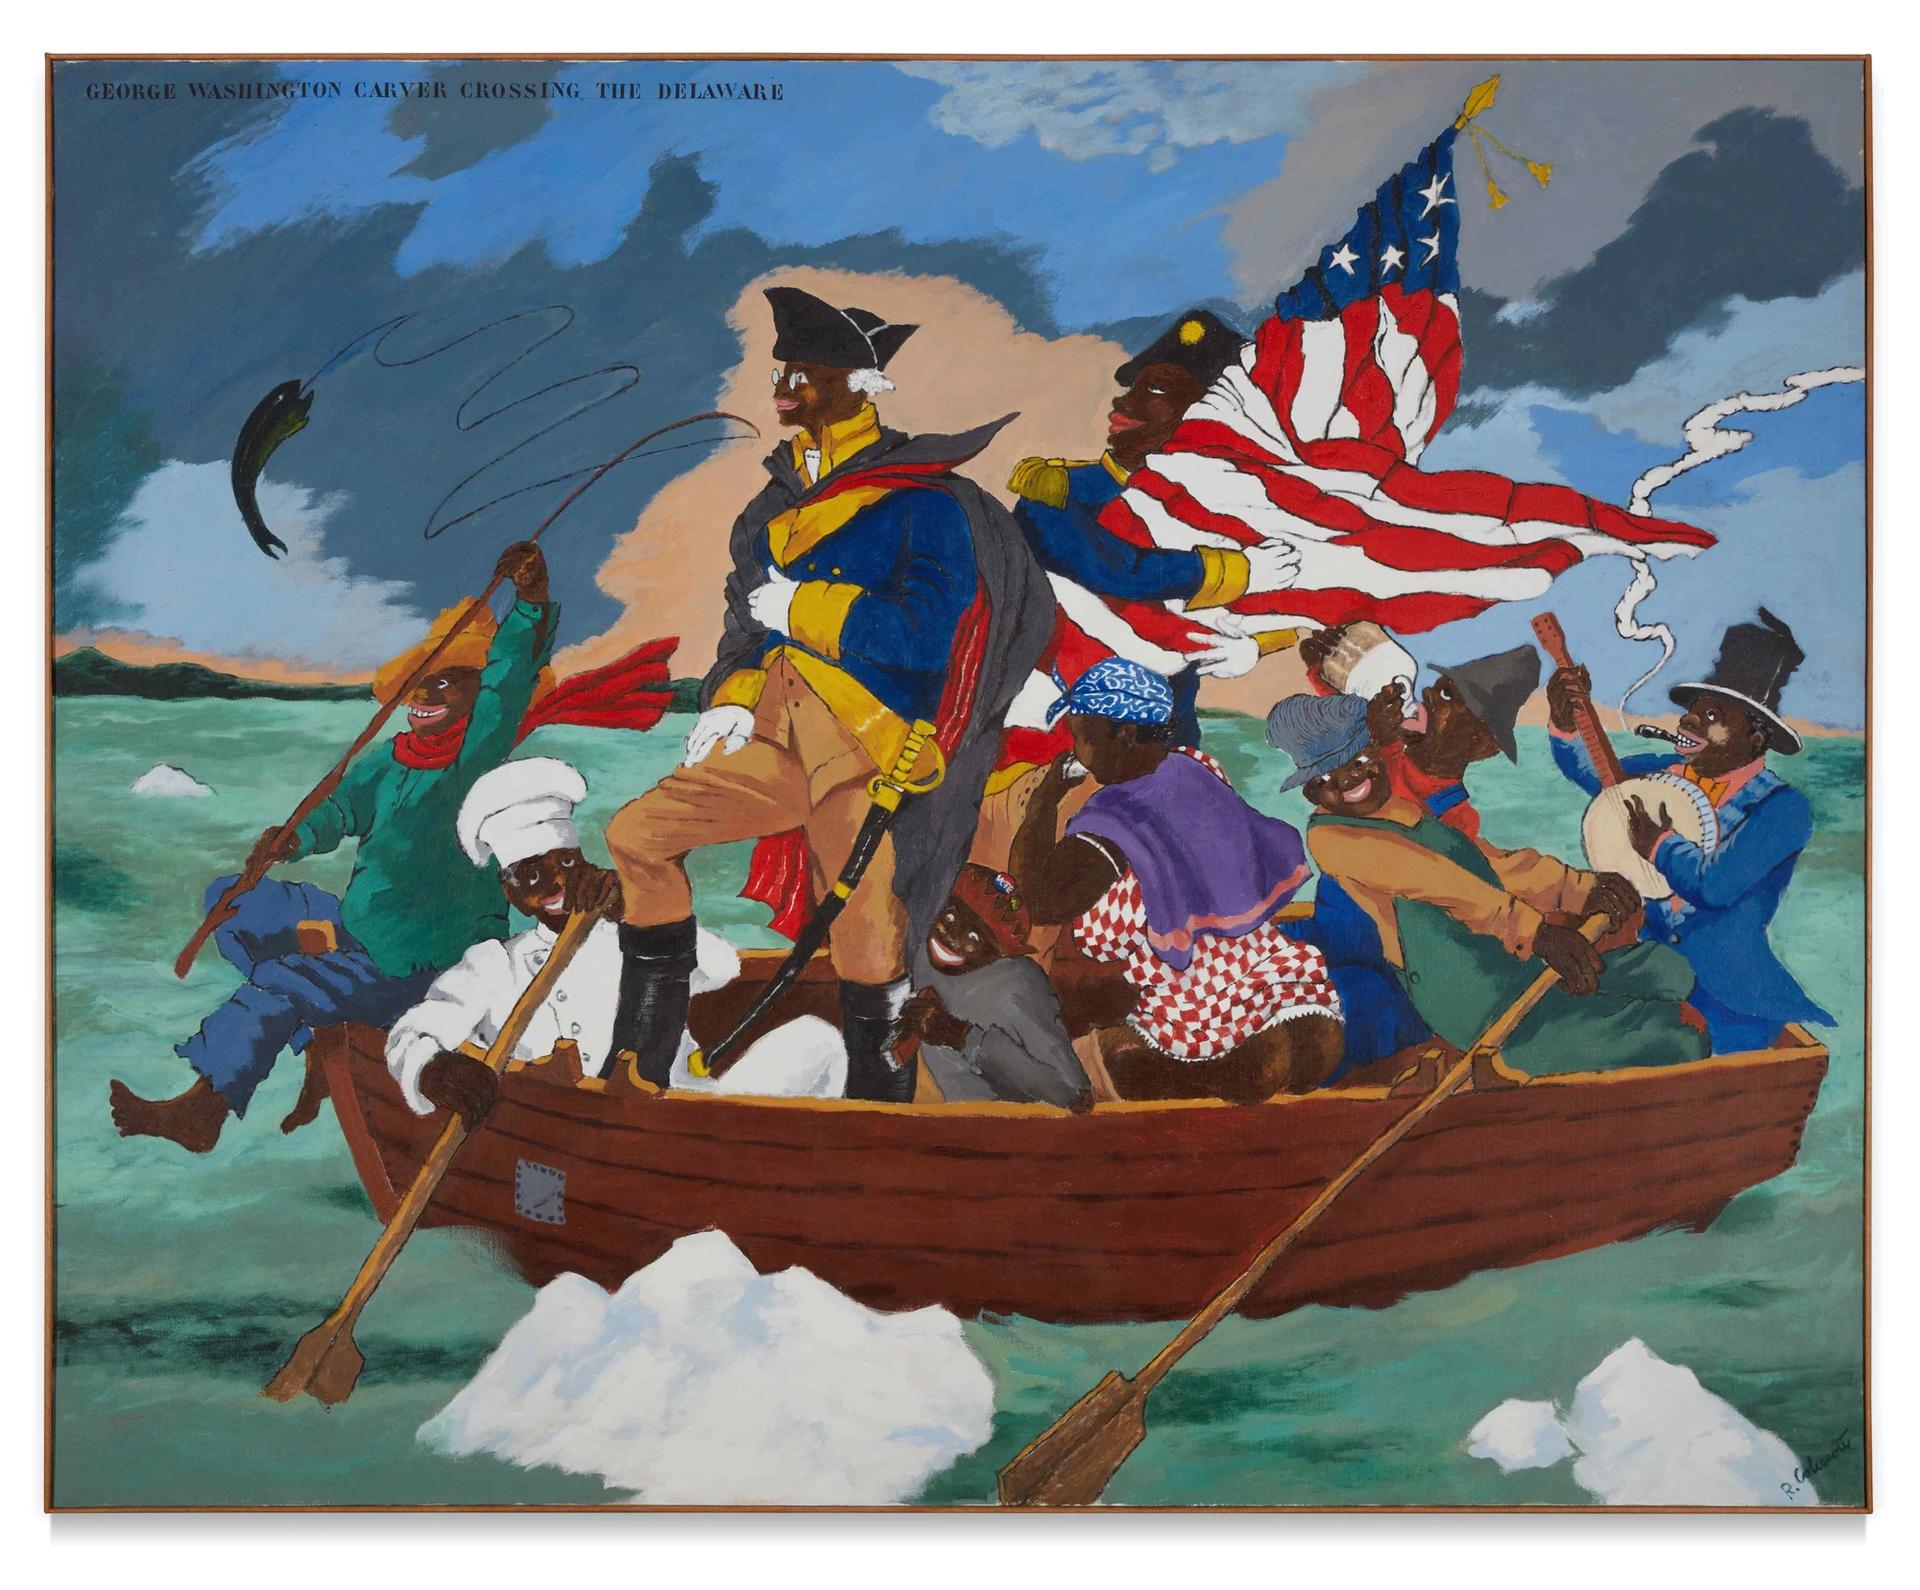 Robert Colescott, George Washington Carver Crossing the Delaware River: Page from an American History Textbook (1975) Courtesy, Sotheby's